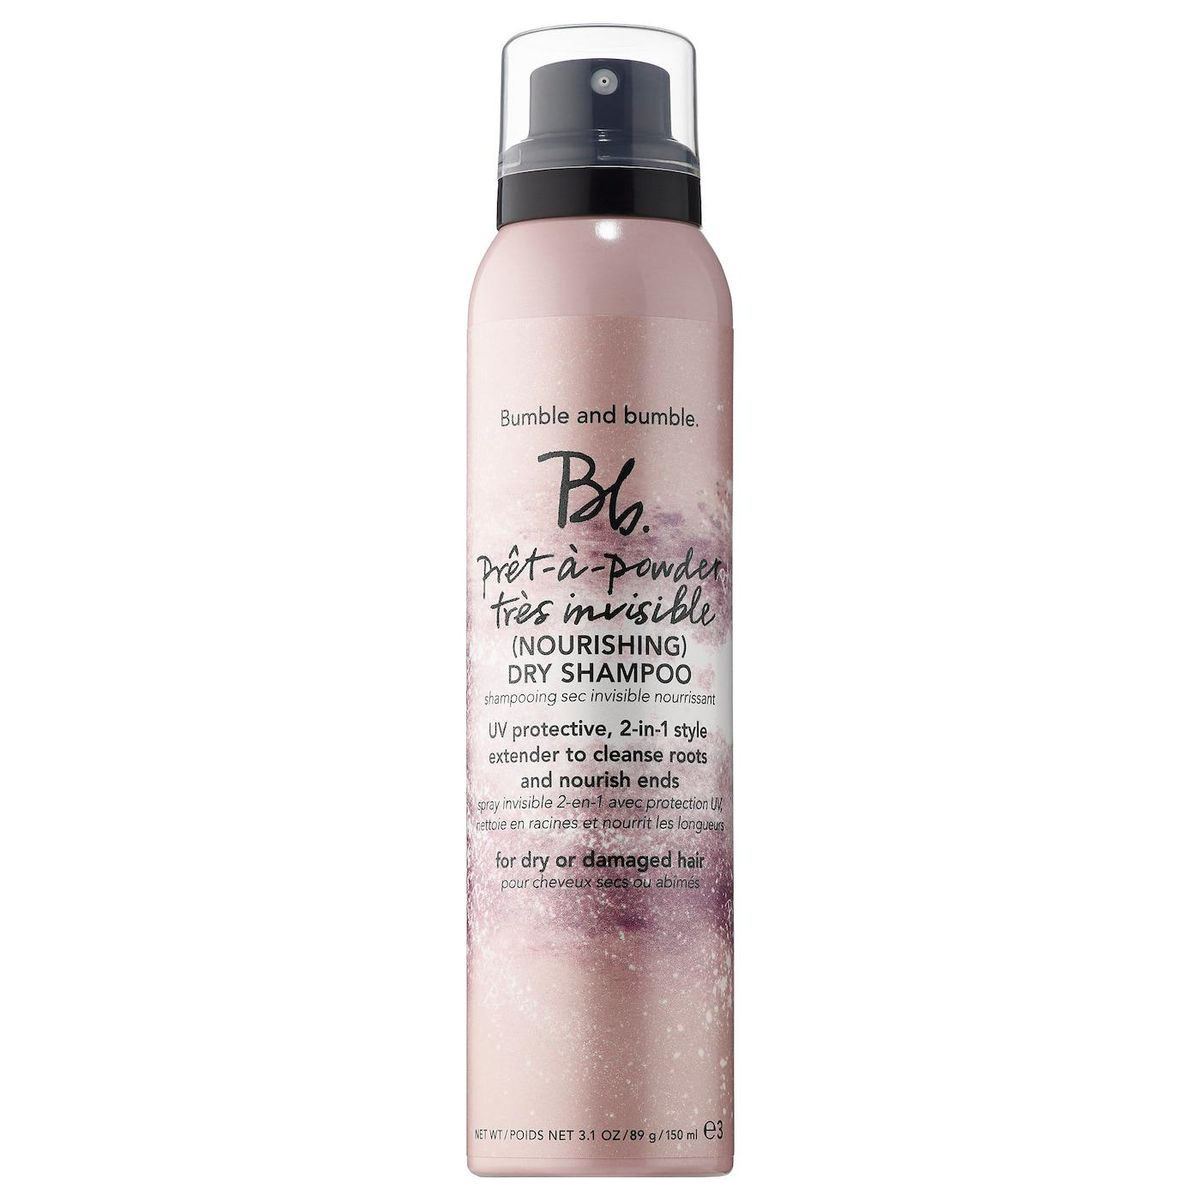 bumble and bumble bb pret a powder tres invisible nourishing dry shampoo with hibiscus extract